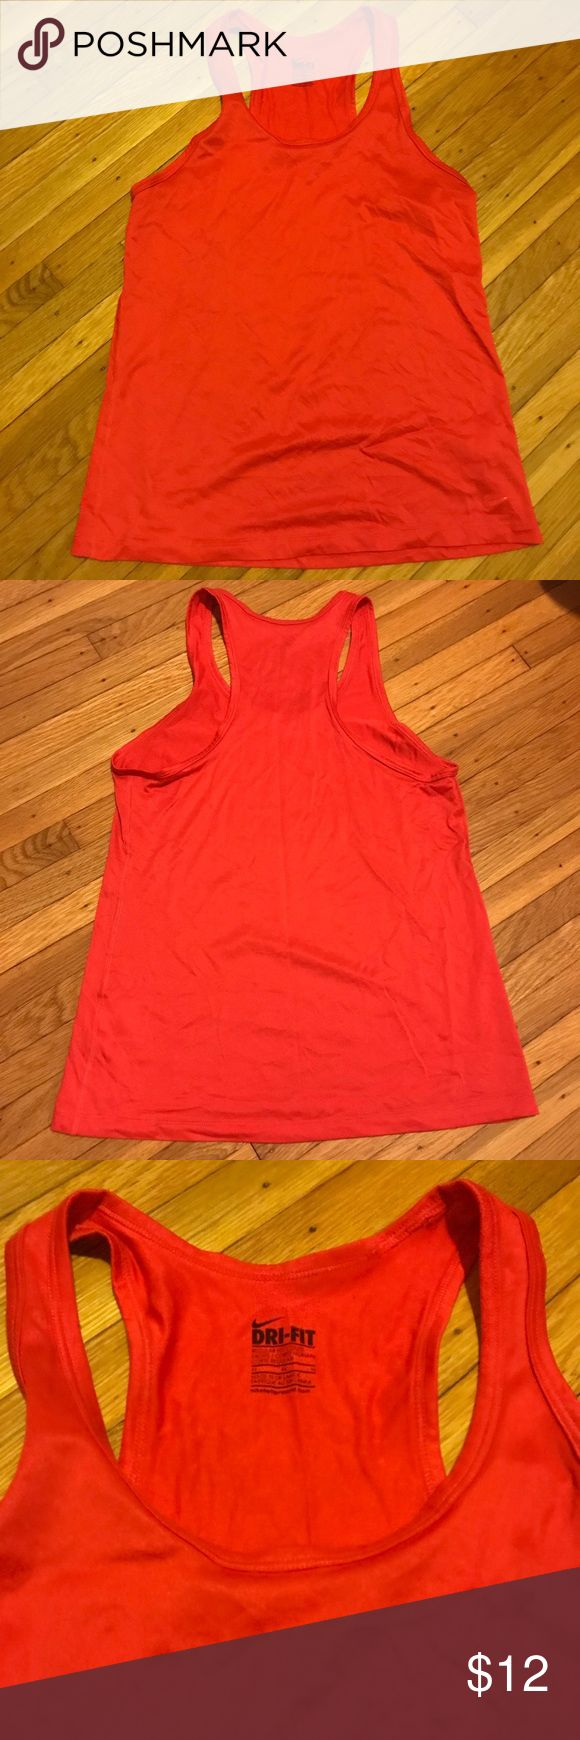 Nike Tank Top This tank top has only been worn a handful of times. It is dri-fit material and great for working out. I love this color and wish this still fit me! Nike Tops Tank Tops